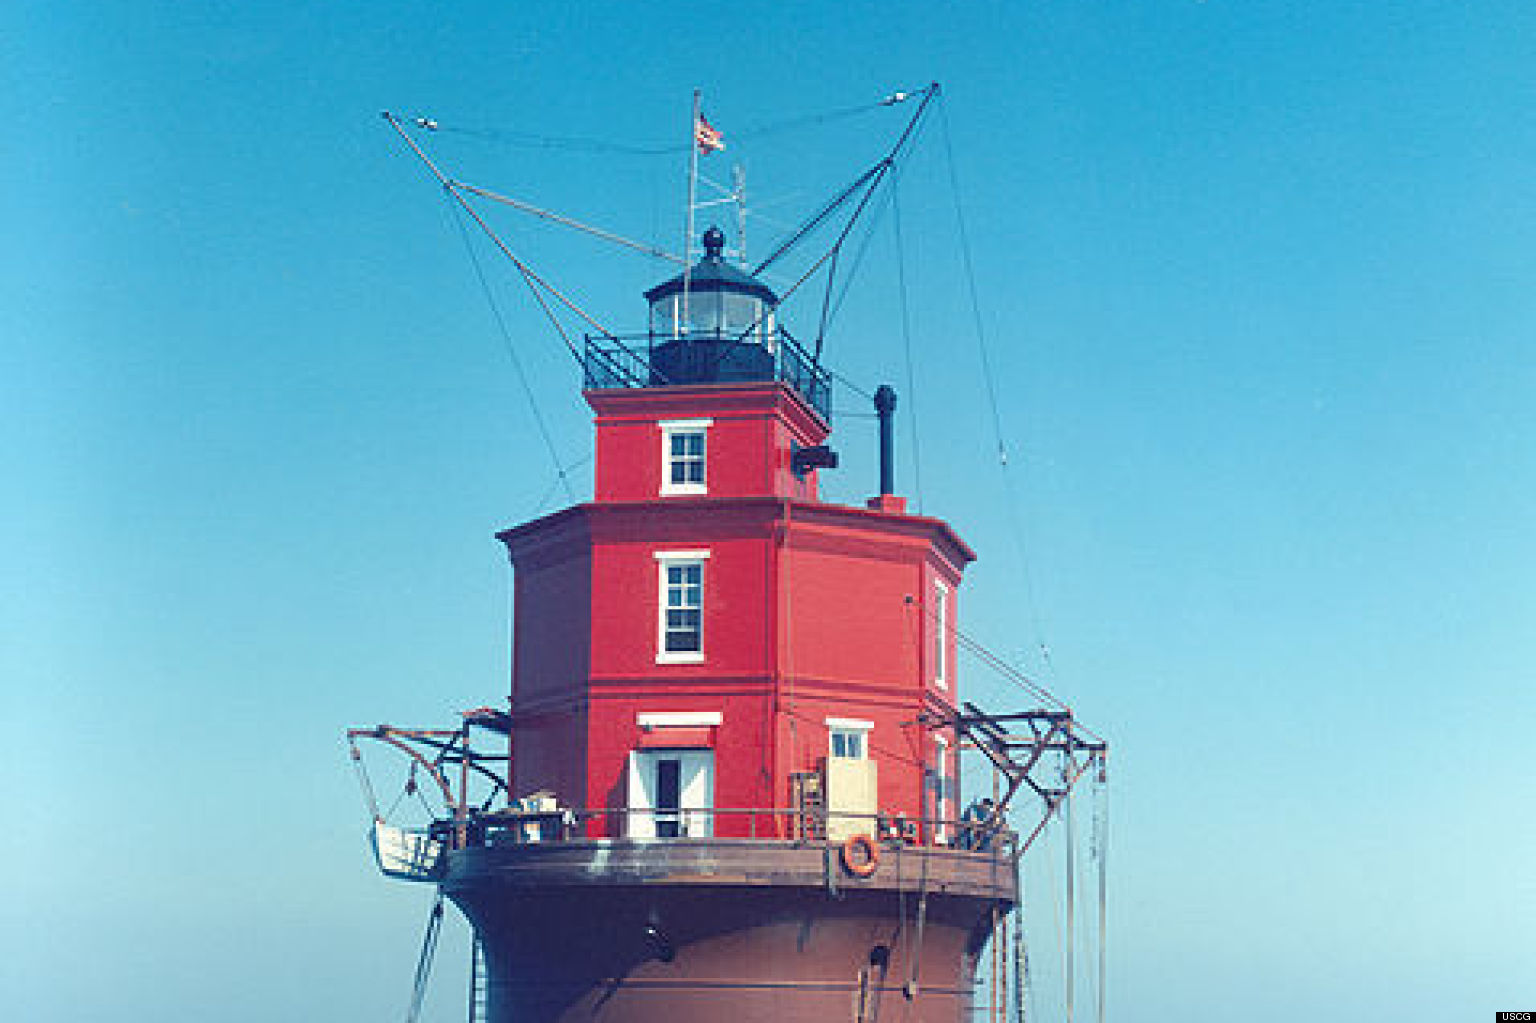 Virginia lighthouse for sale wolf trap lighthouse comes with virginia lighthouse for sale wolf trap lighthouse comes with waterfront property weird history photos huffpost sciox Image collections